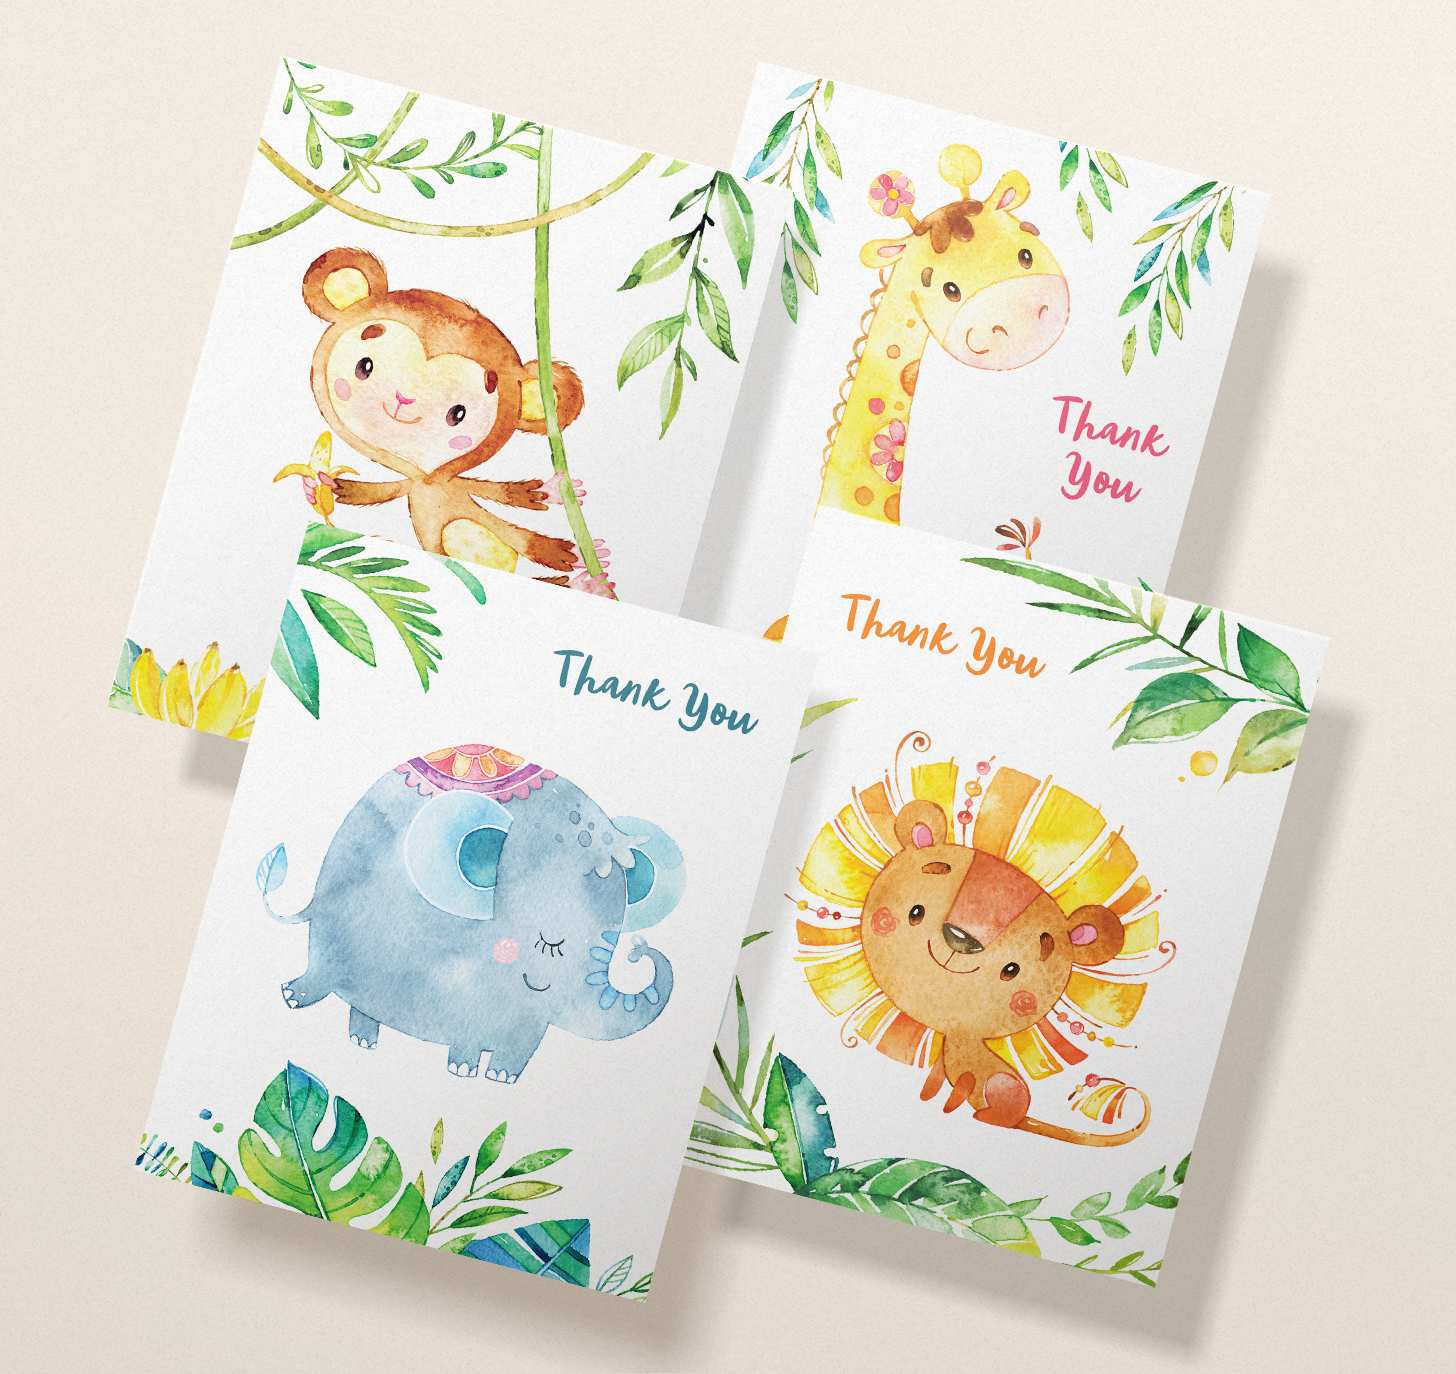 Four overlapping cards with cute lion, monkey, giraffe, and elephant designs